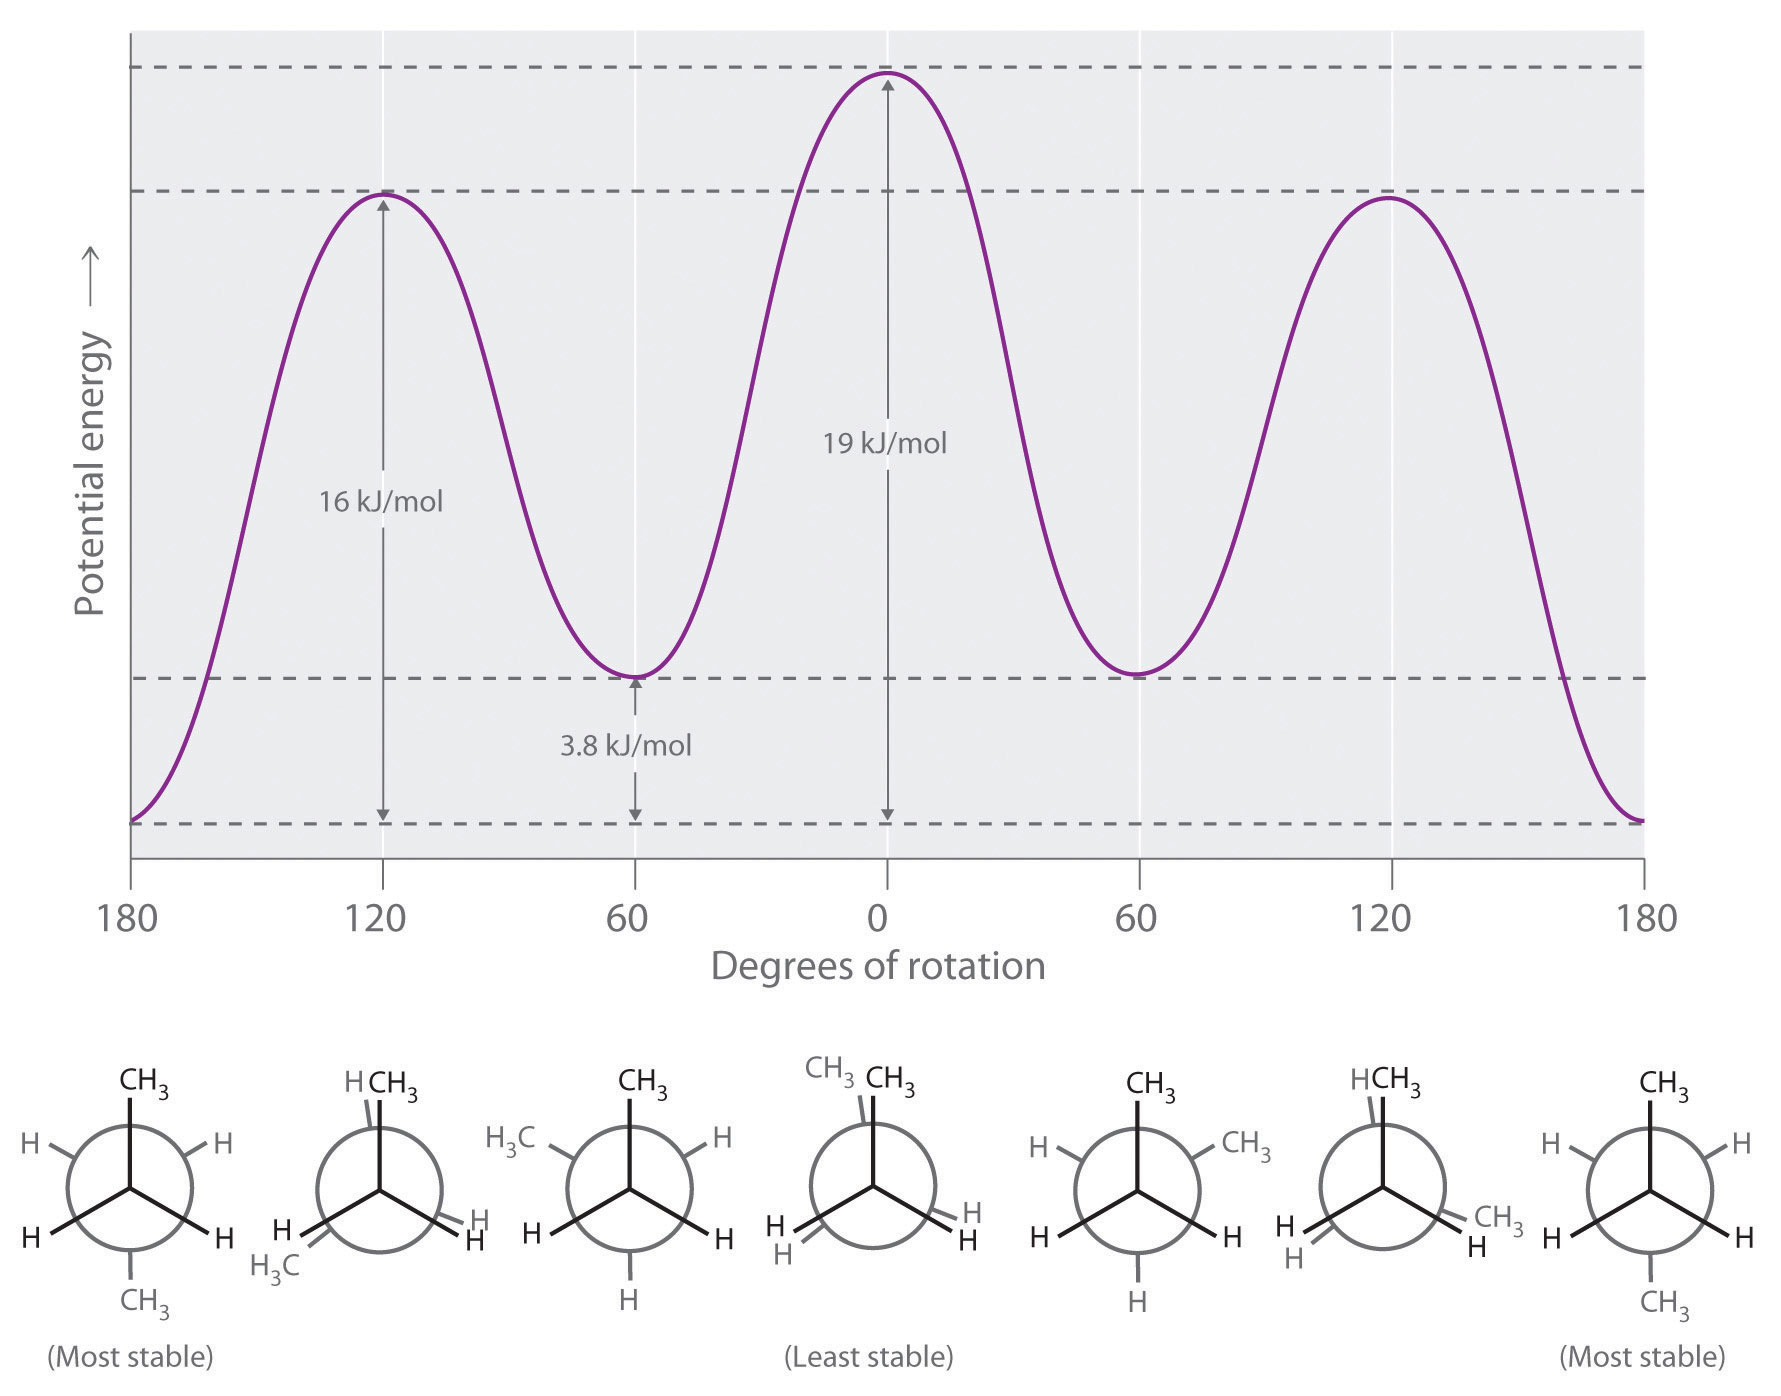 The least stable structure is  N Pentane Lewis Structure